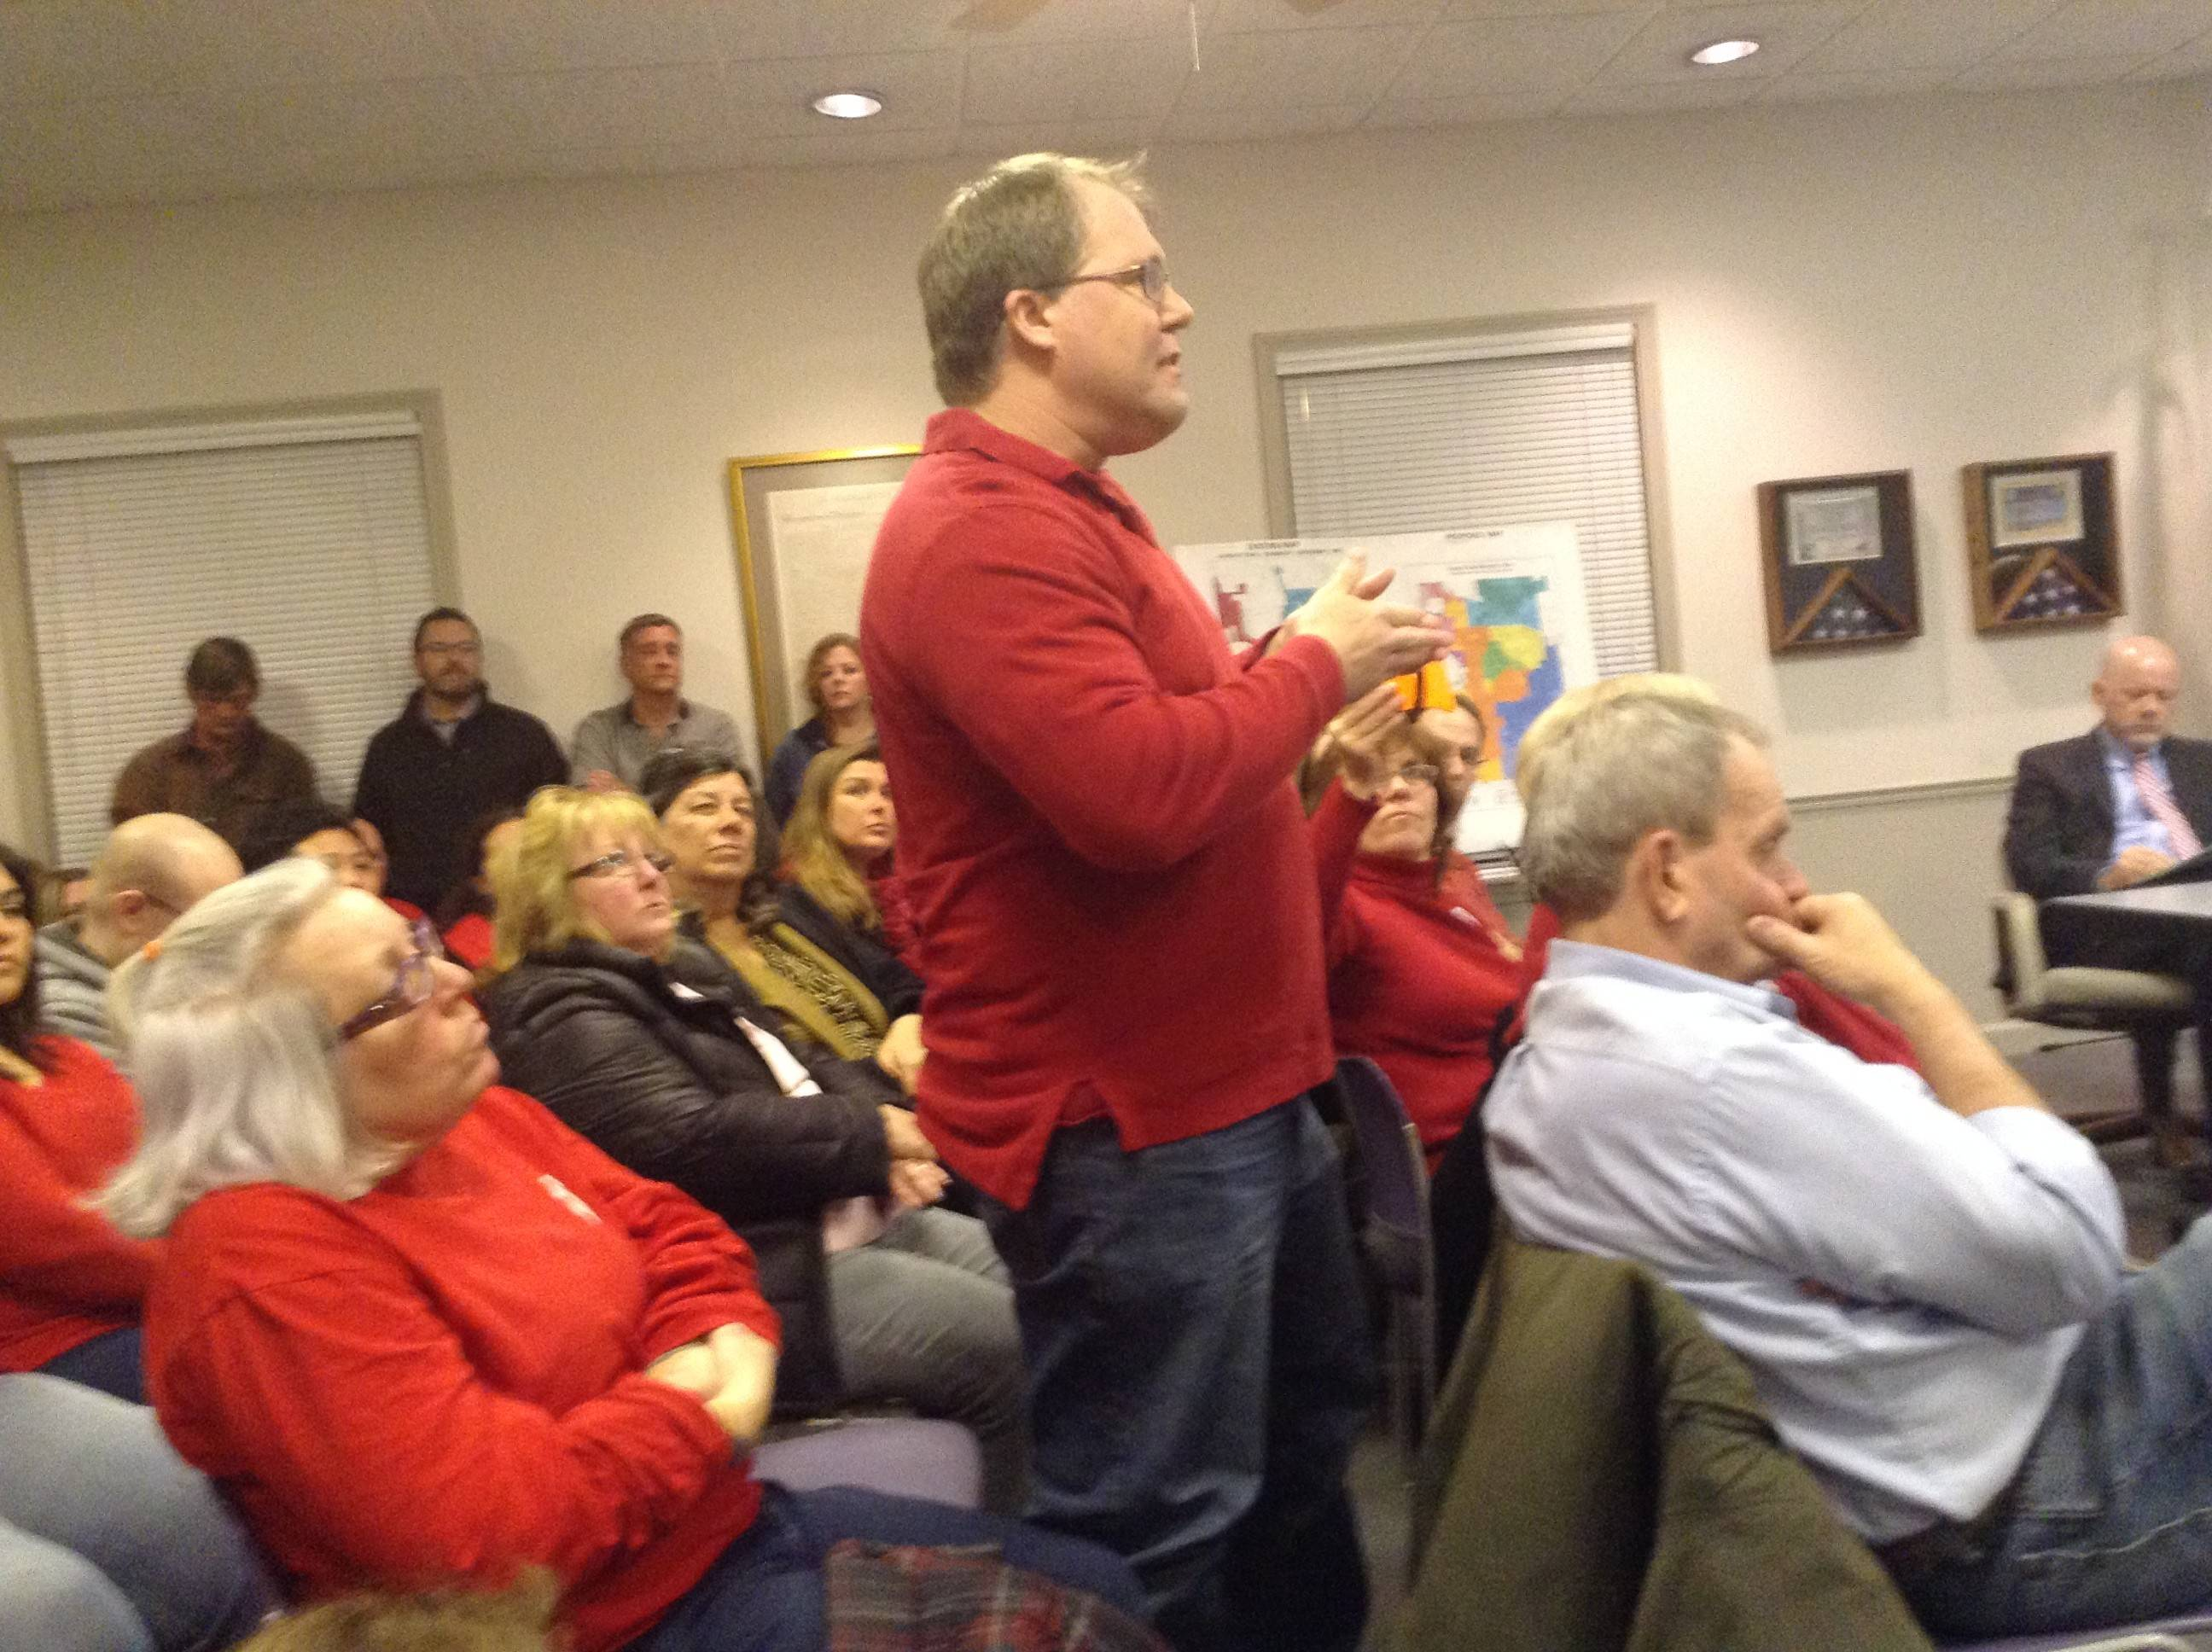 Packed Wauconda board meeting leads to complaints